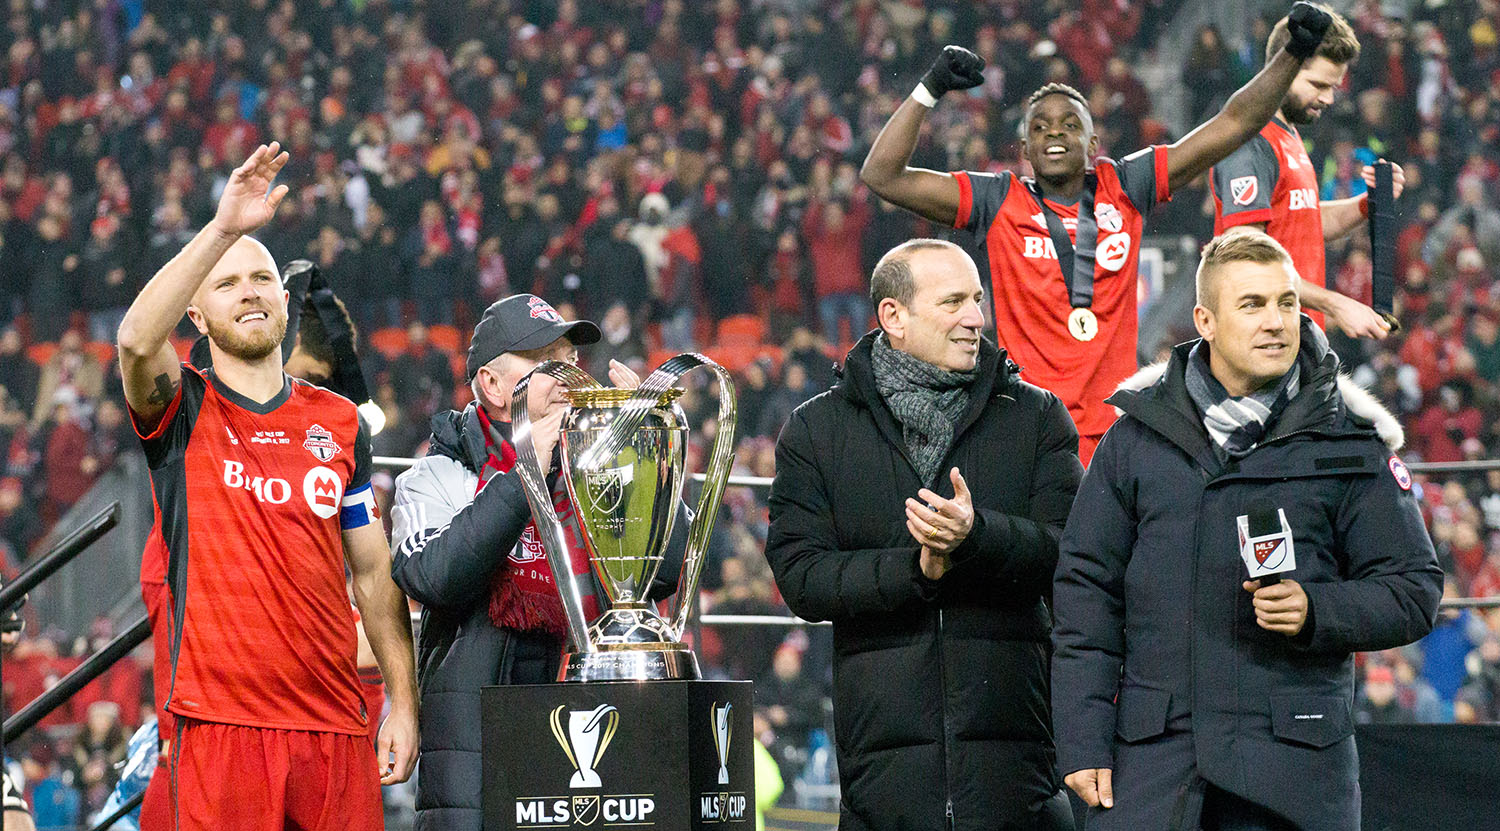 Michael Bradley, Don Garber and Taylor Twellman await the trophy presentation after the 2017 MLS Cup final whistle is blown.Image by Dennis Marciniak of denMAR Media.